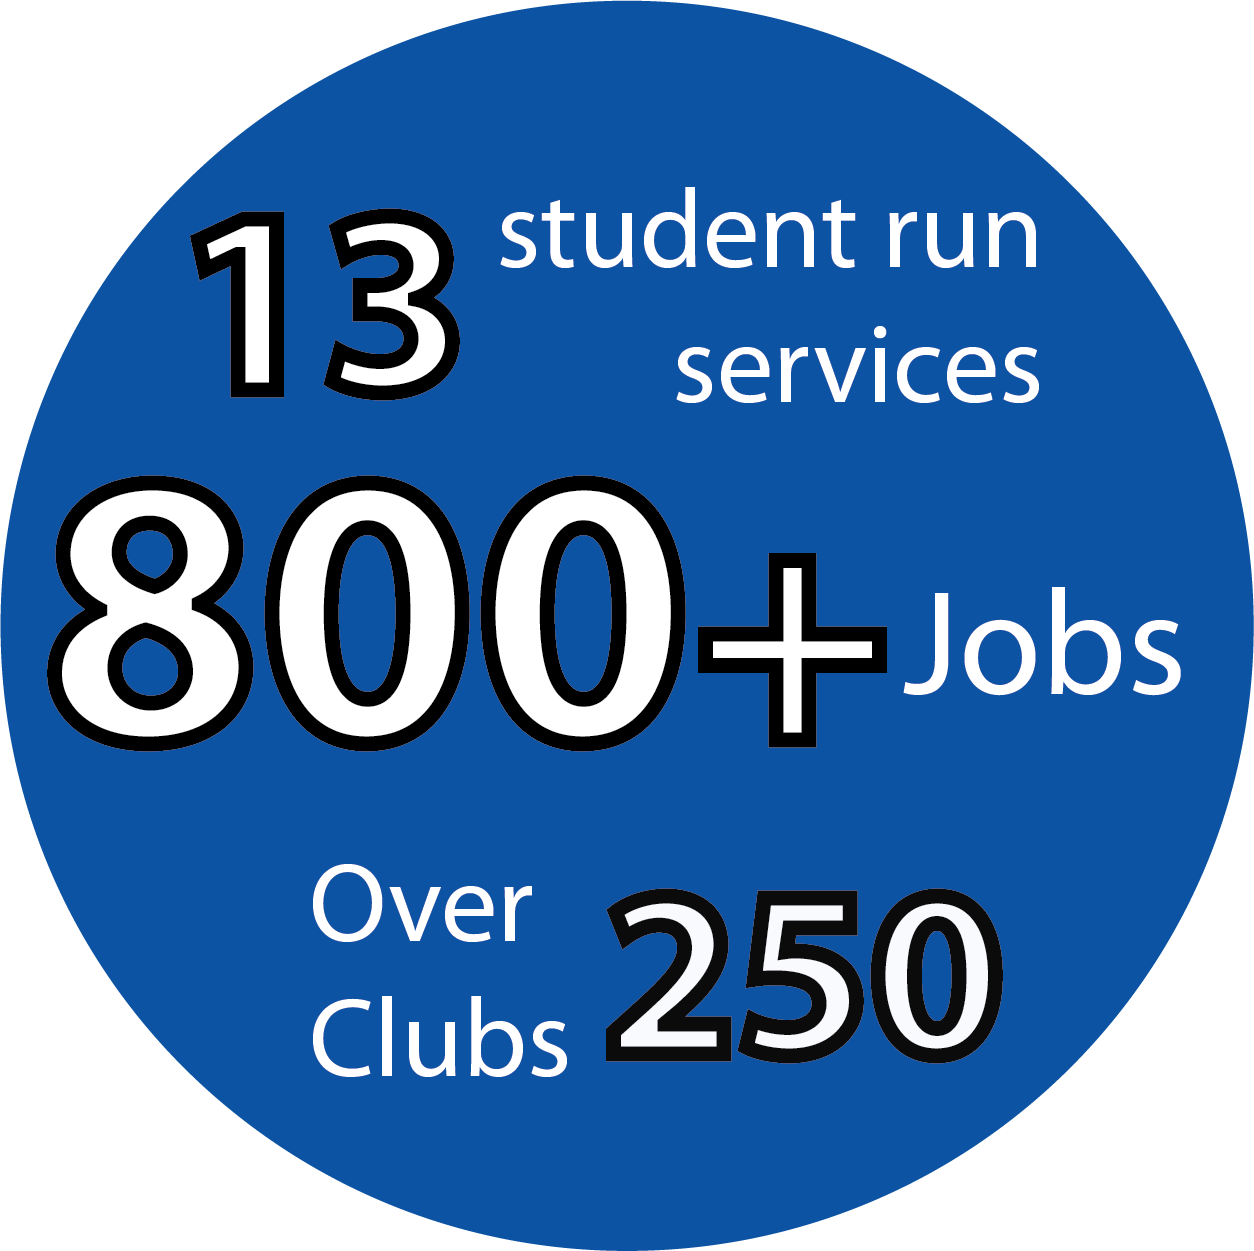 The AMS provides 13 student-run services with over 800 jobs, and oversees over 250 ratified clubs.